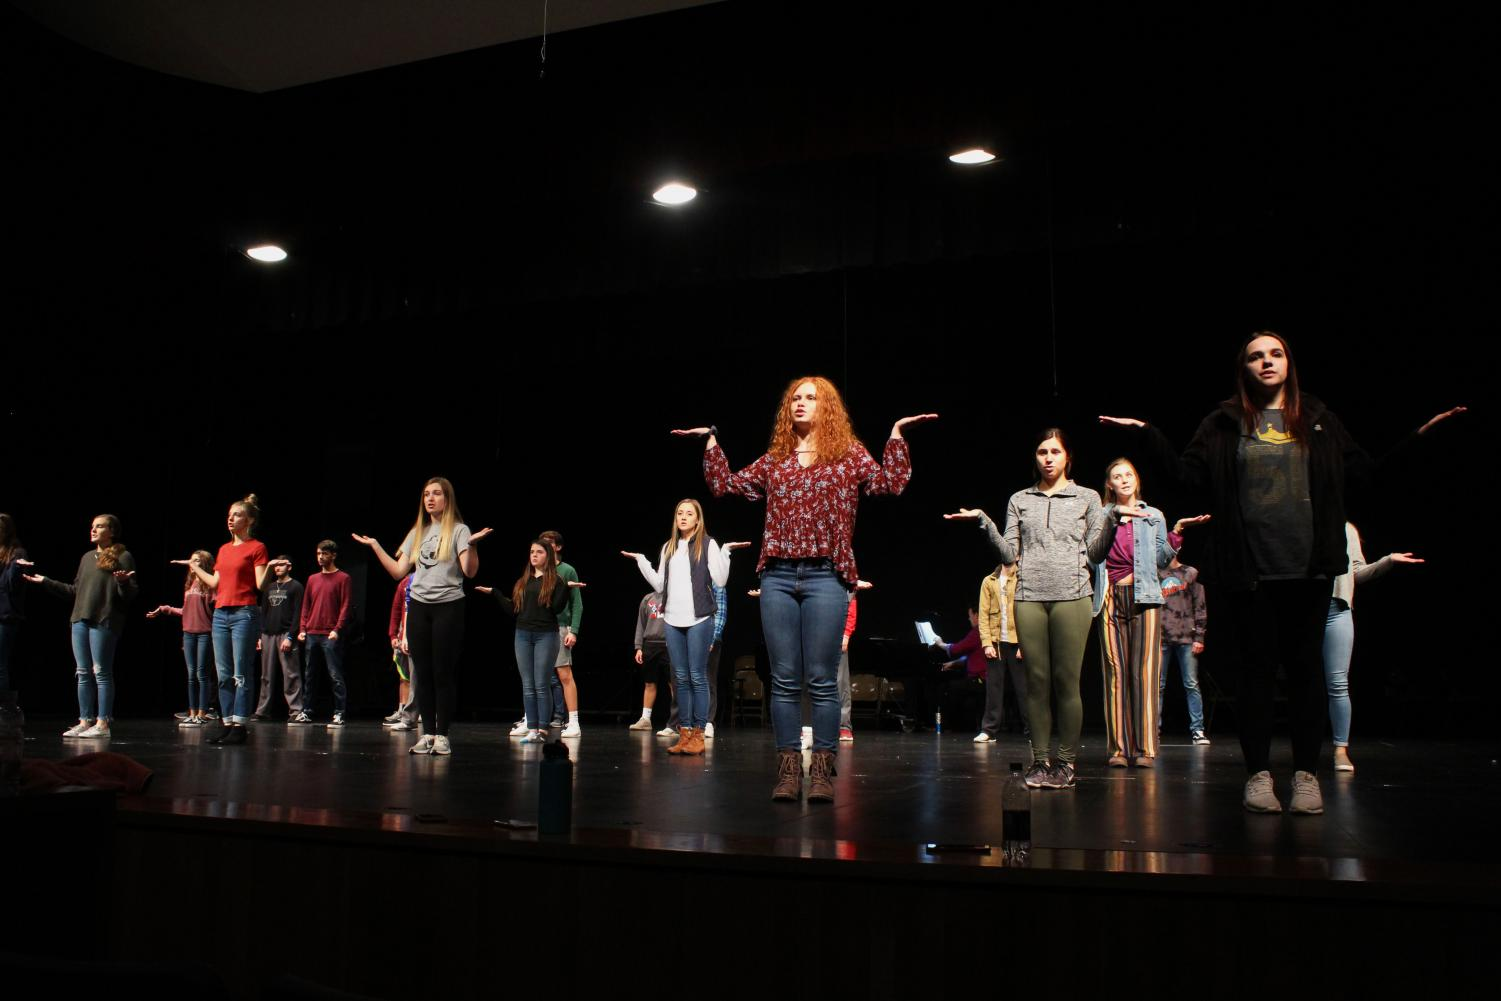 The Maize South vocal department practices for their yearly winter showcase. The show is Dec. 13 at 7:30 pm.